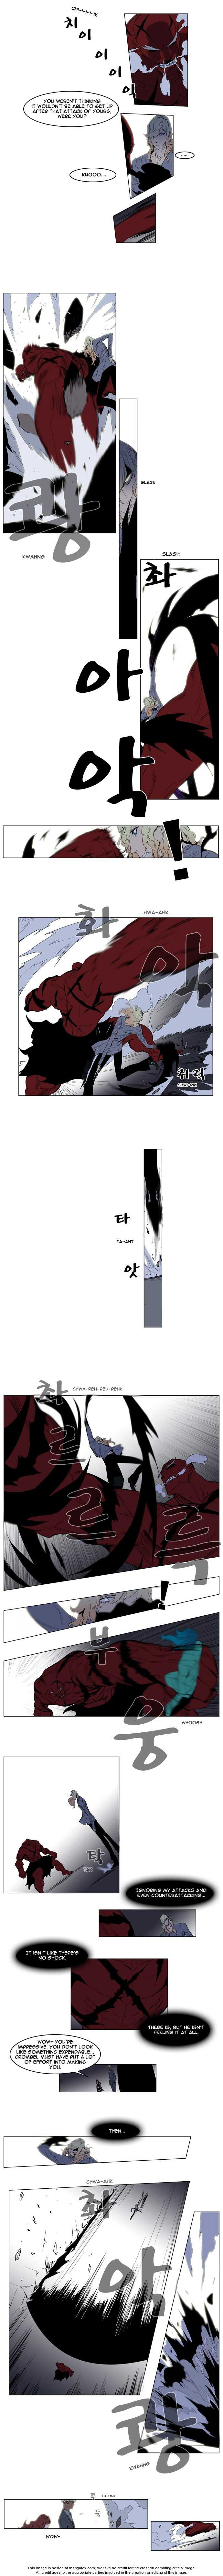 Noblesse 147 Page 2